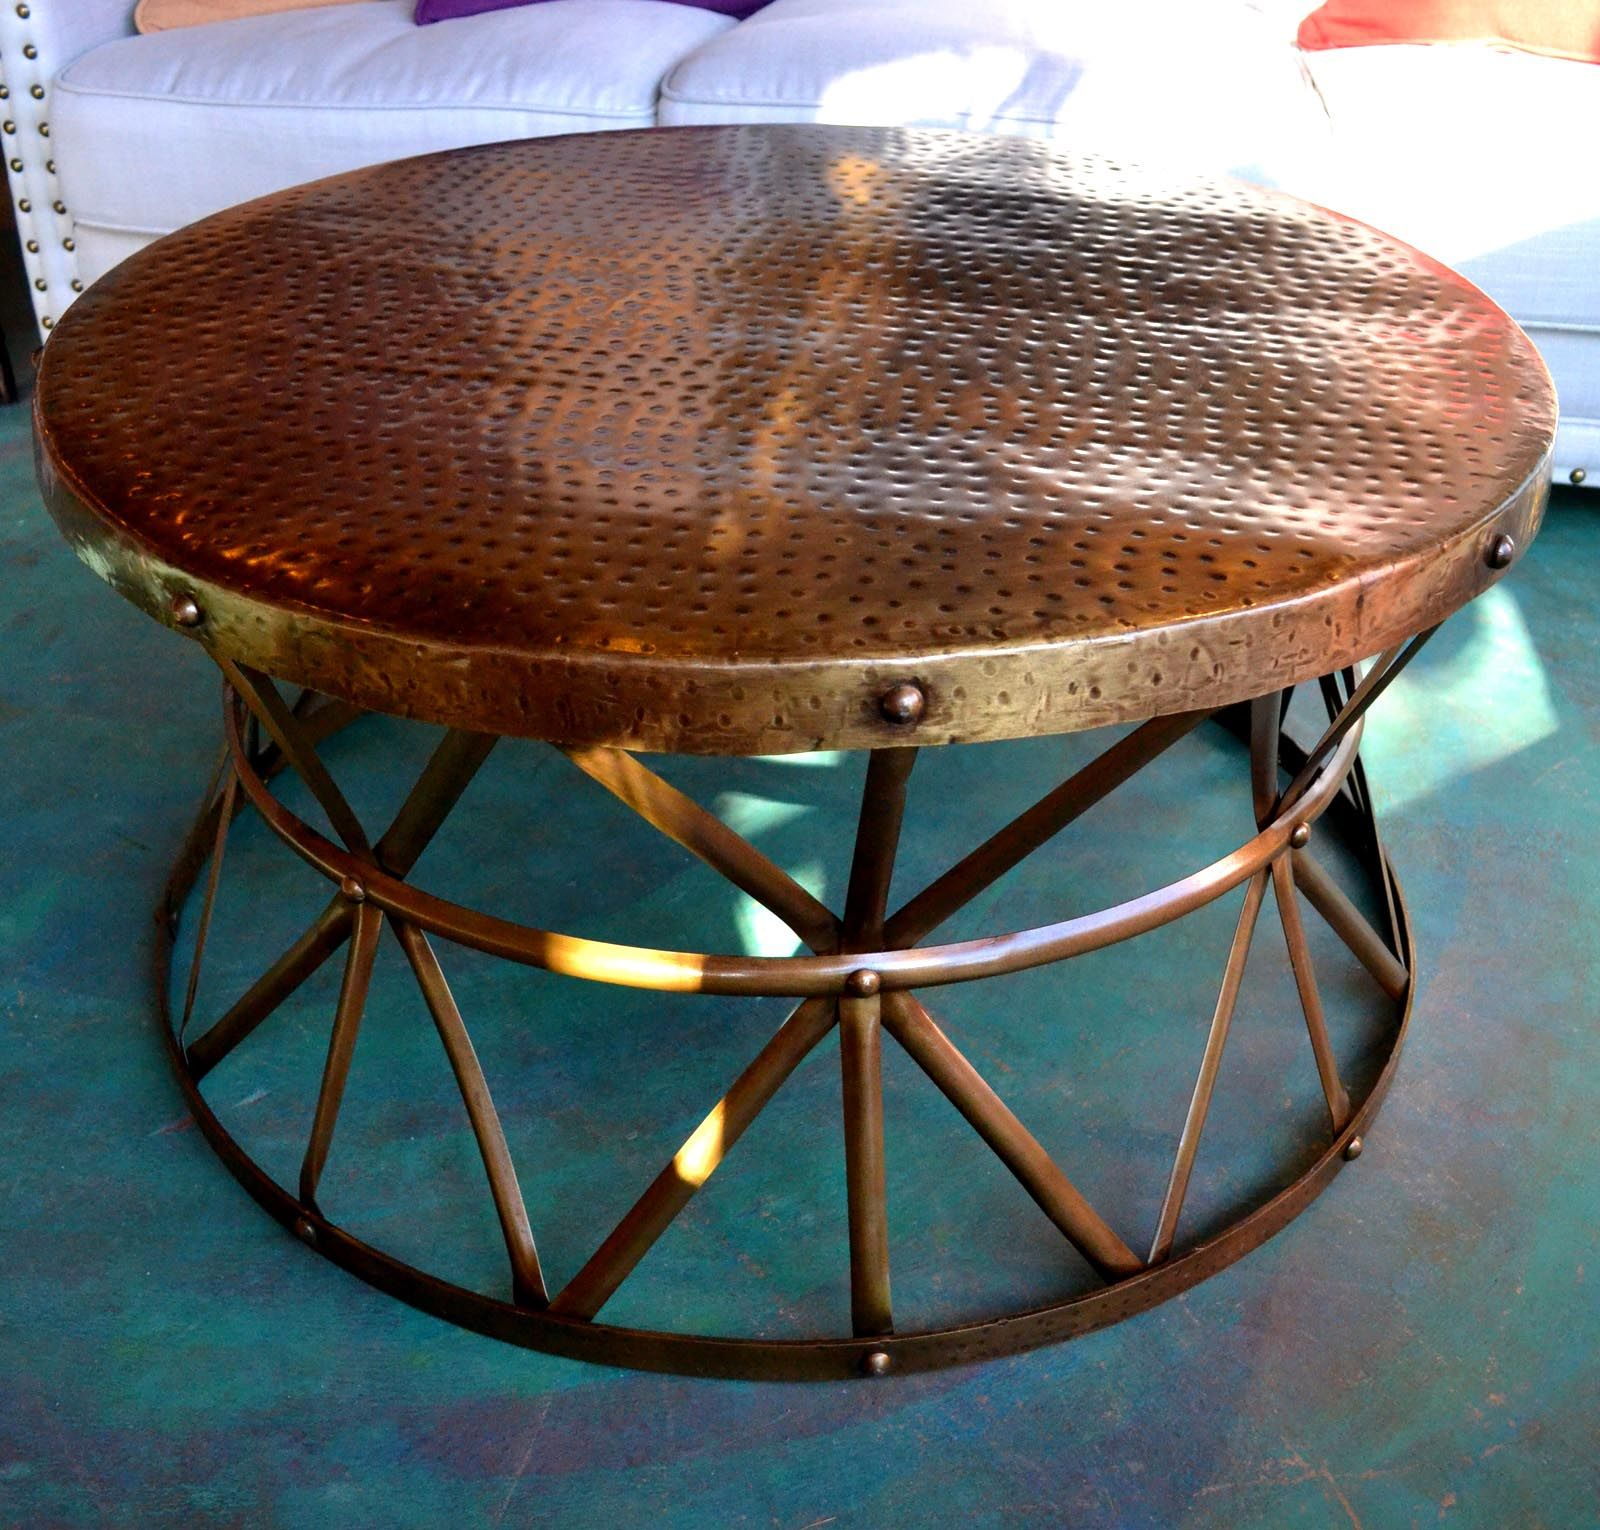 "Jatex Copper 42"" x 18"" Round Drum Coffee Table"